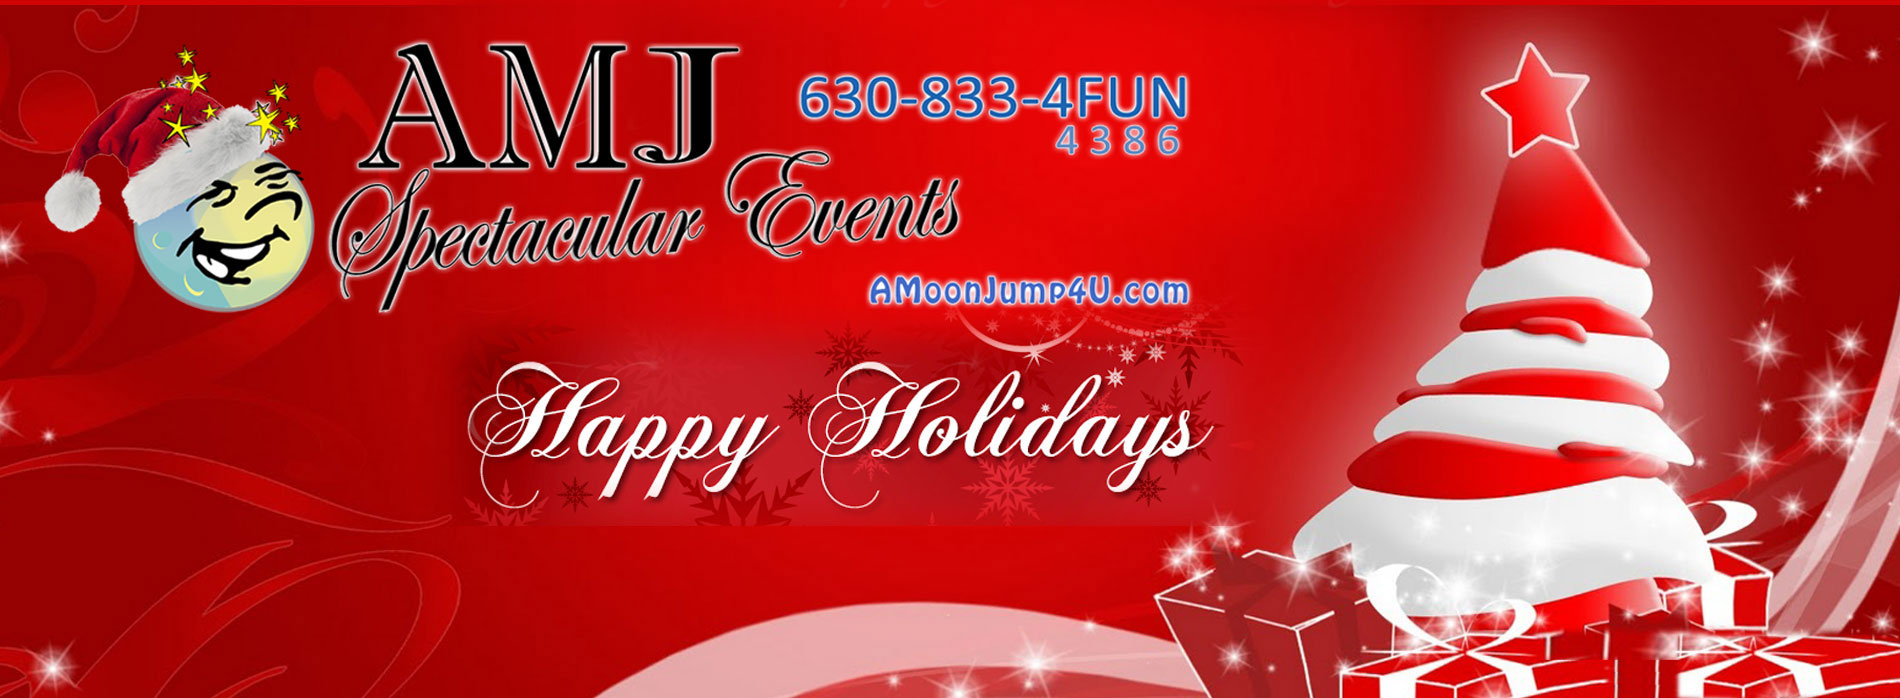 Happy Holidays from AMJ Spectacular Events Inflatable Rentals Chicago Illinois